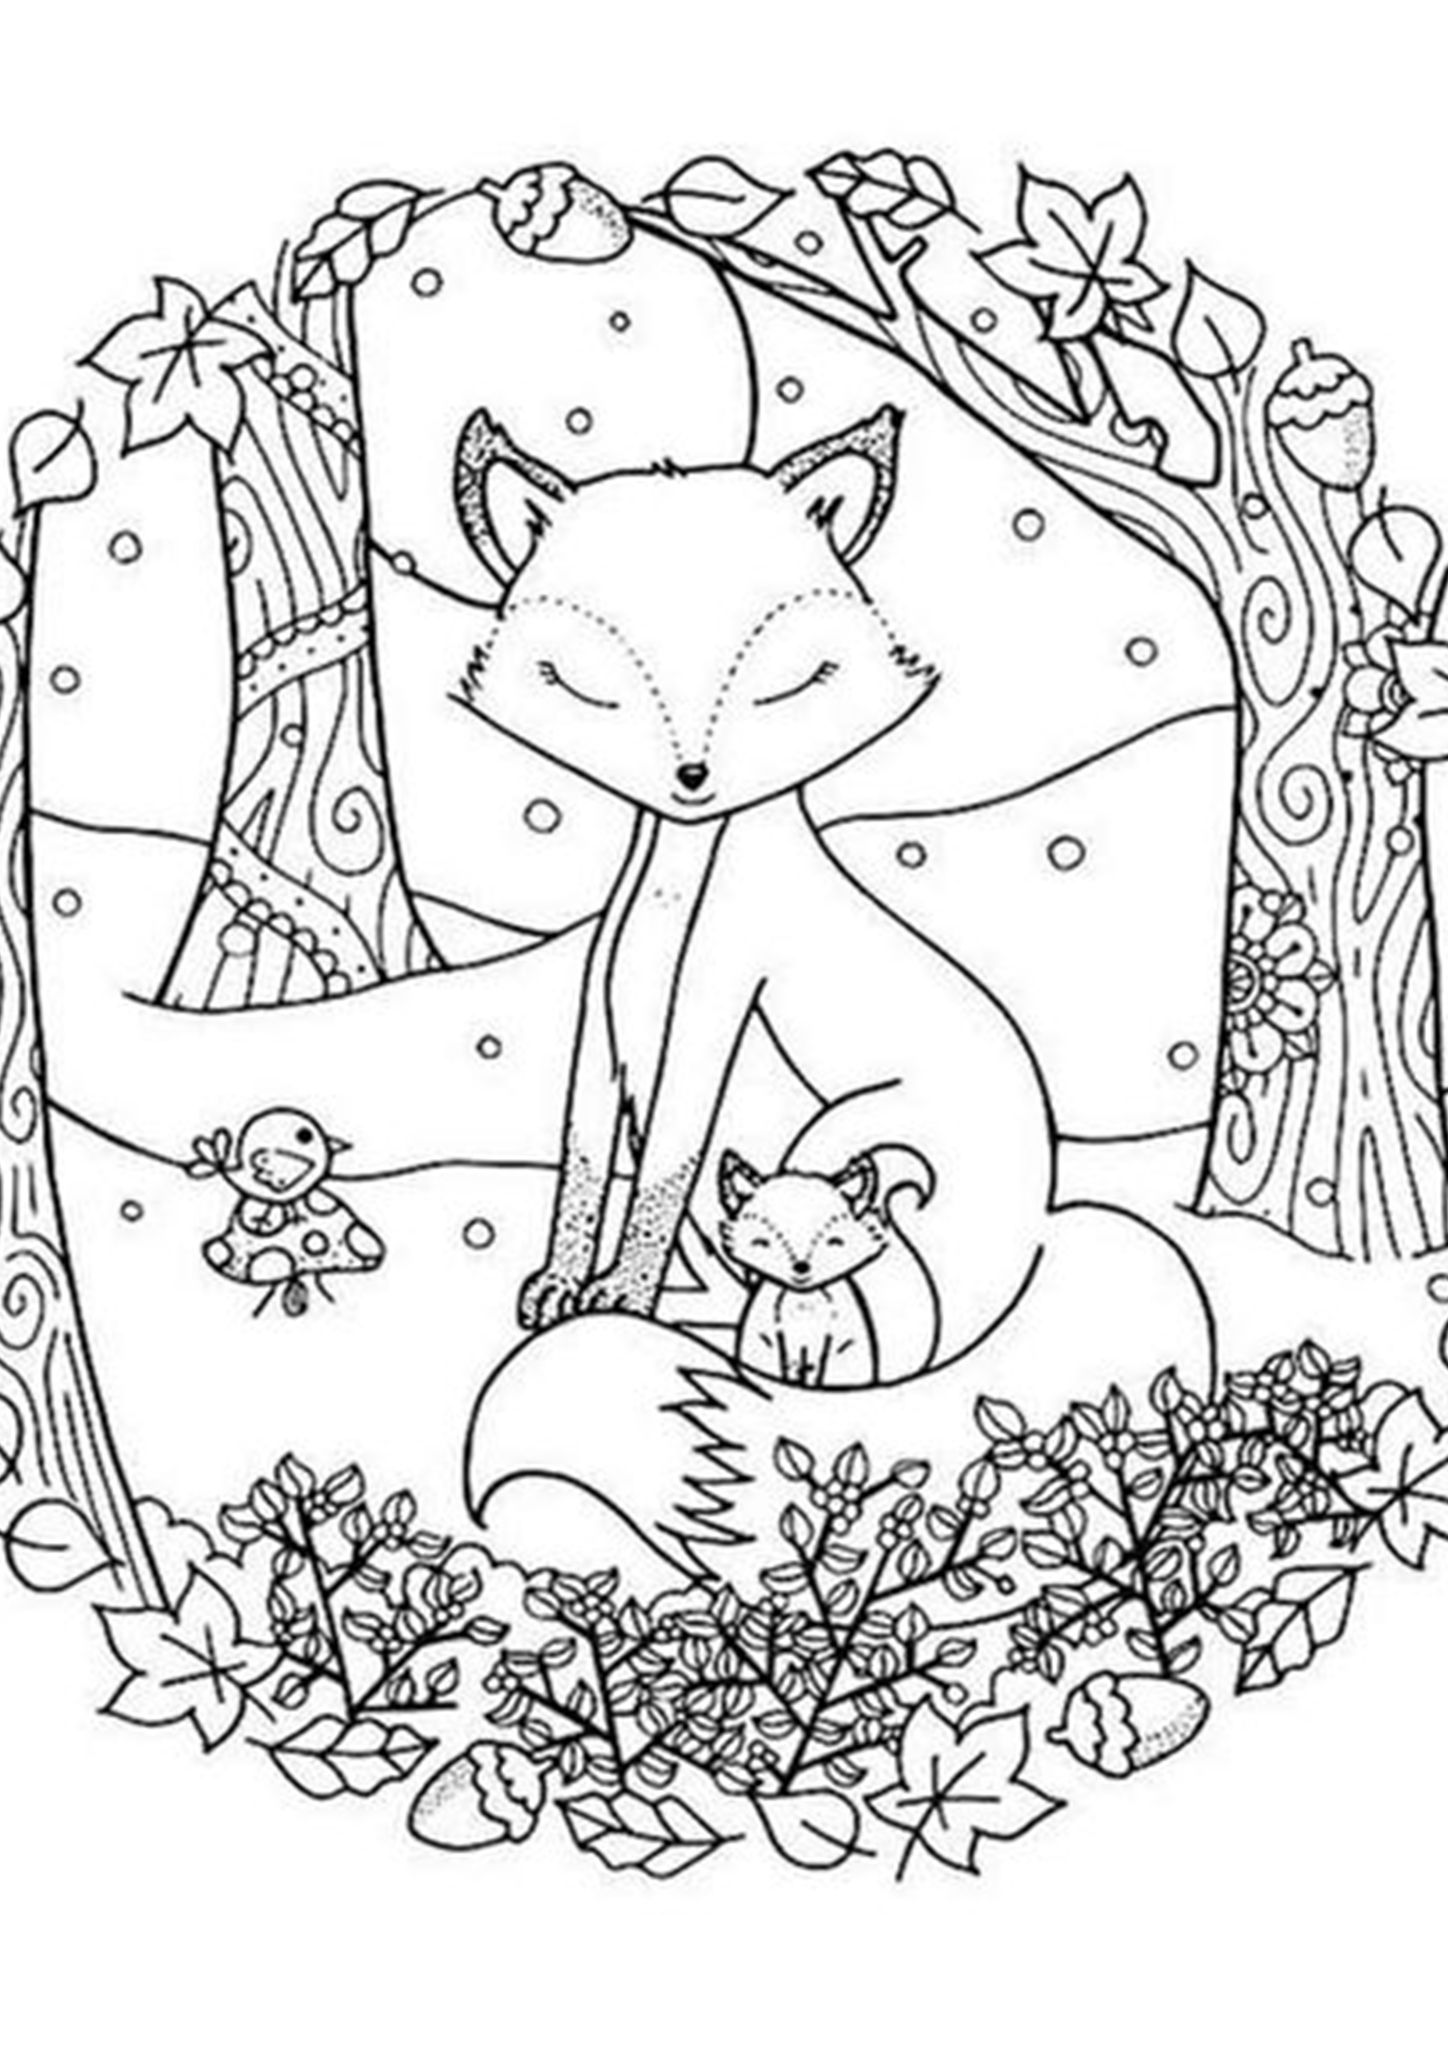 Free Easy To Print Fox Coloring Pages Coloring Pages Winter Fox Coloring Page Animal Coloring Pages